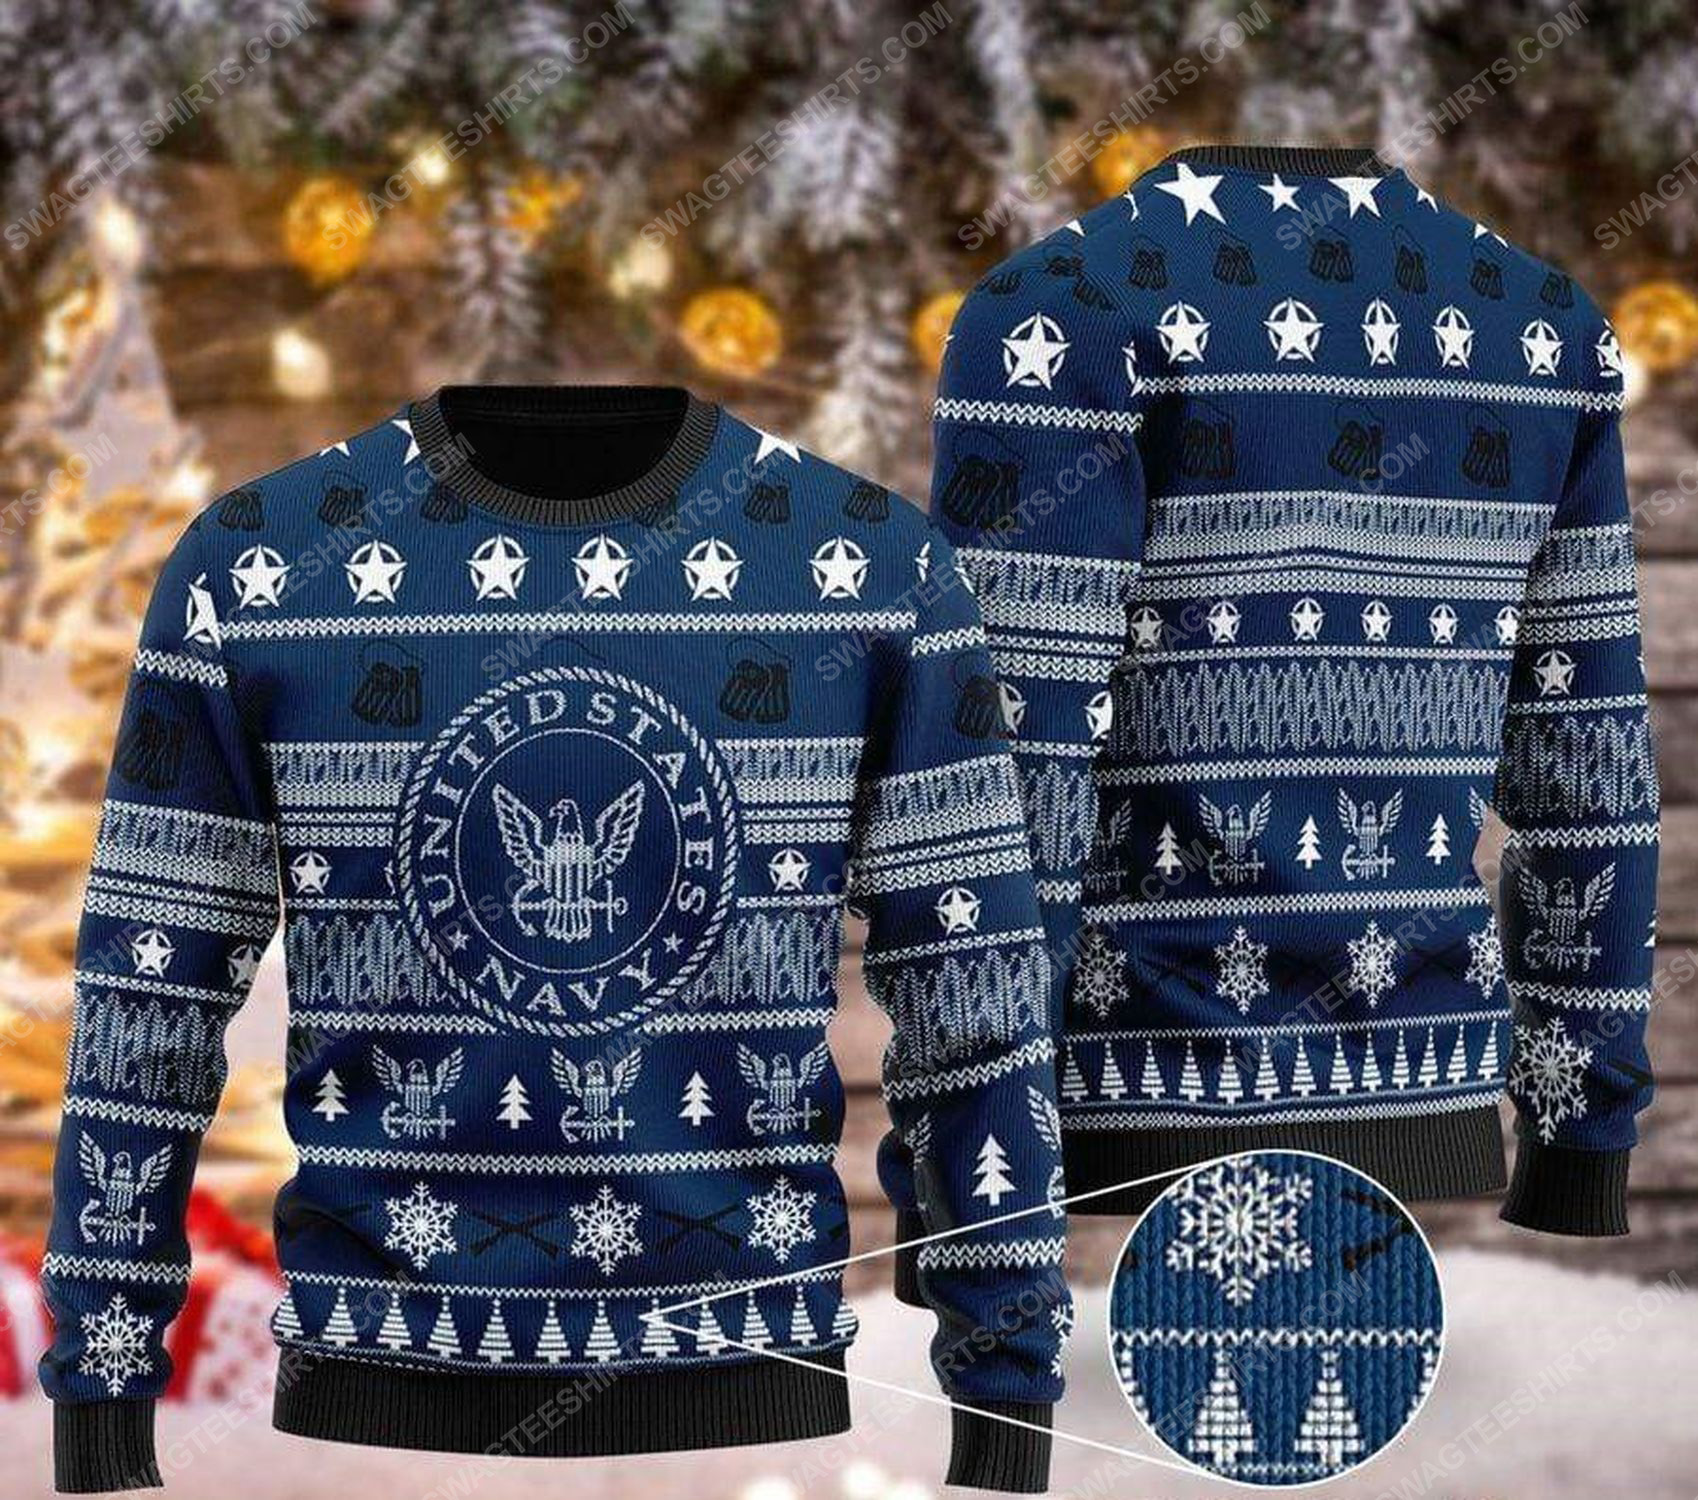 United states navy pattern ugly christmas sweater 1 - Copy - Copy